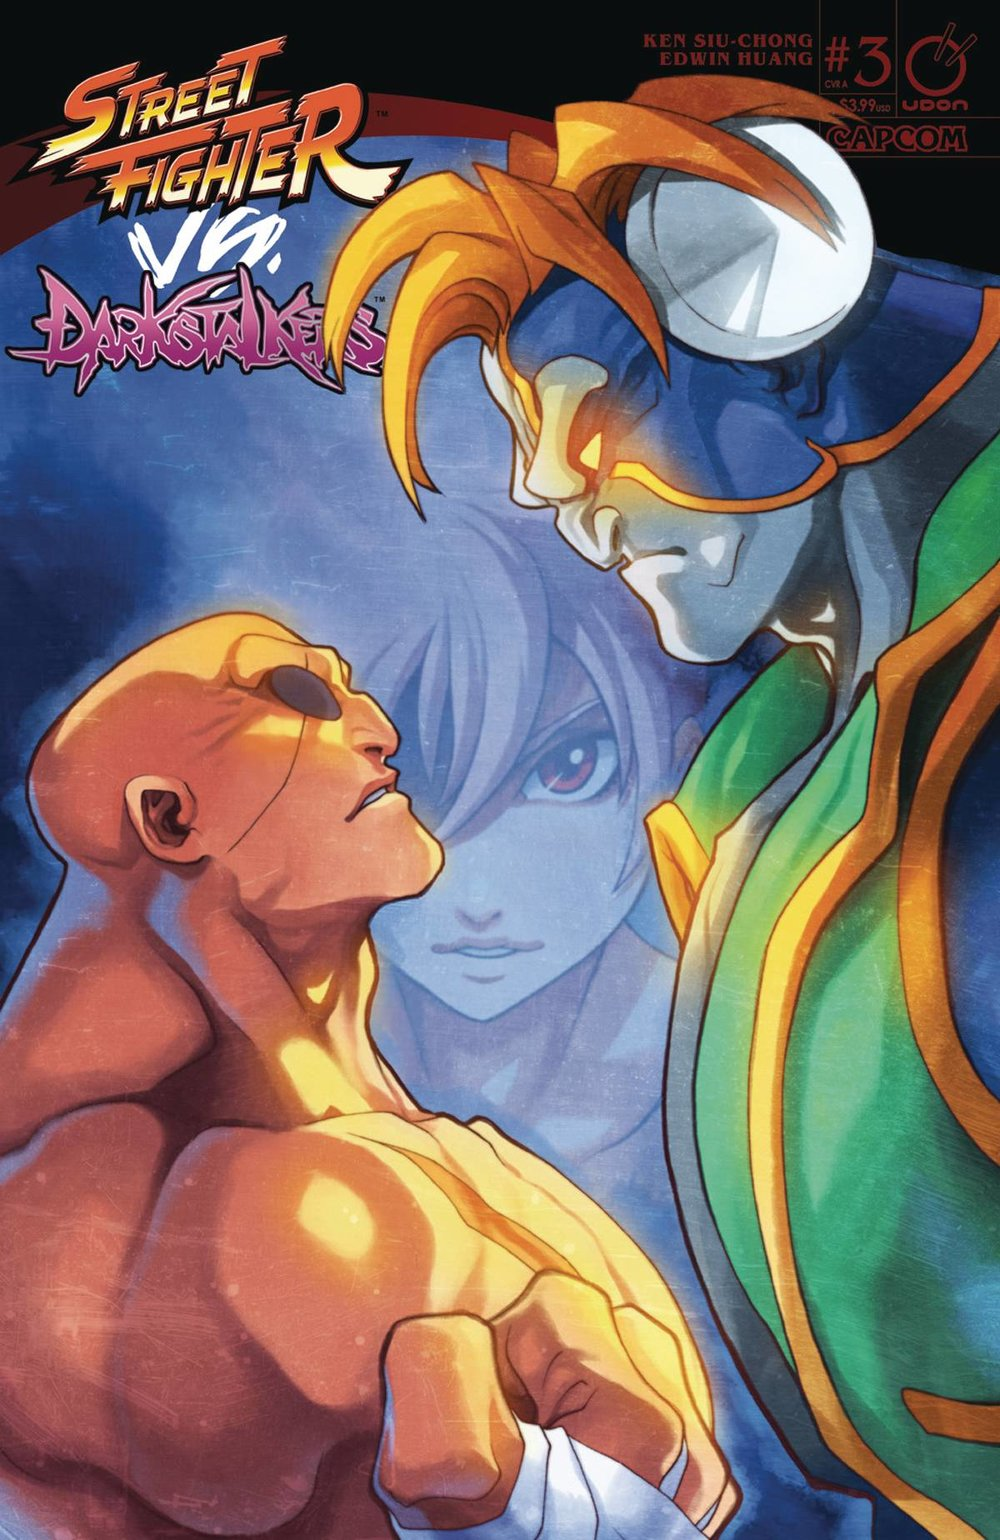 STREET FIGHTER VS DARKSTALKERS 3 of 8 CVR A HUANG.jpg